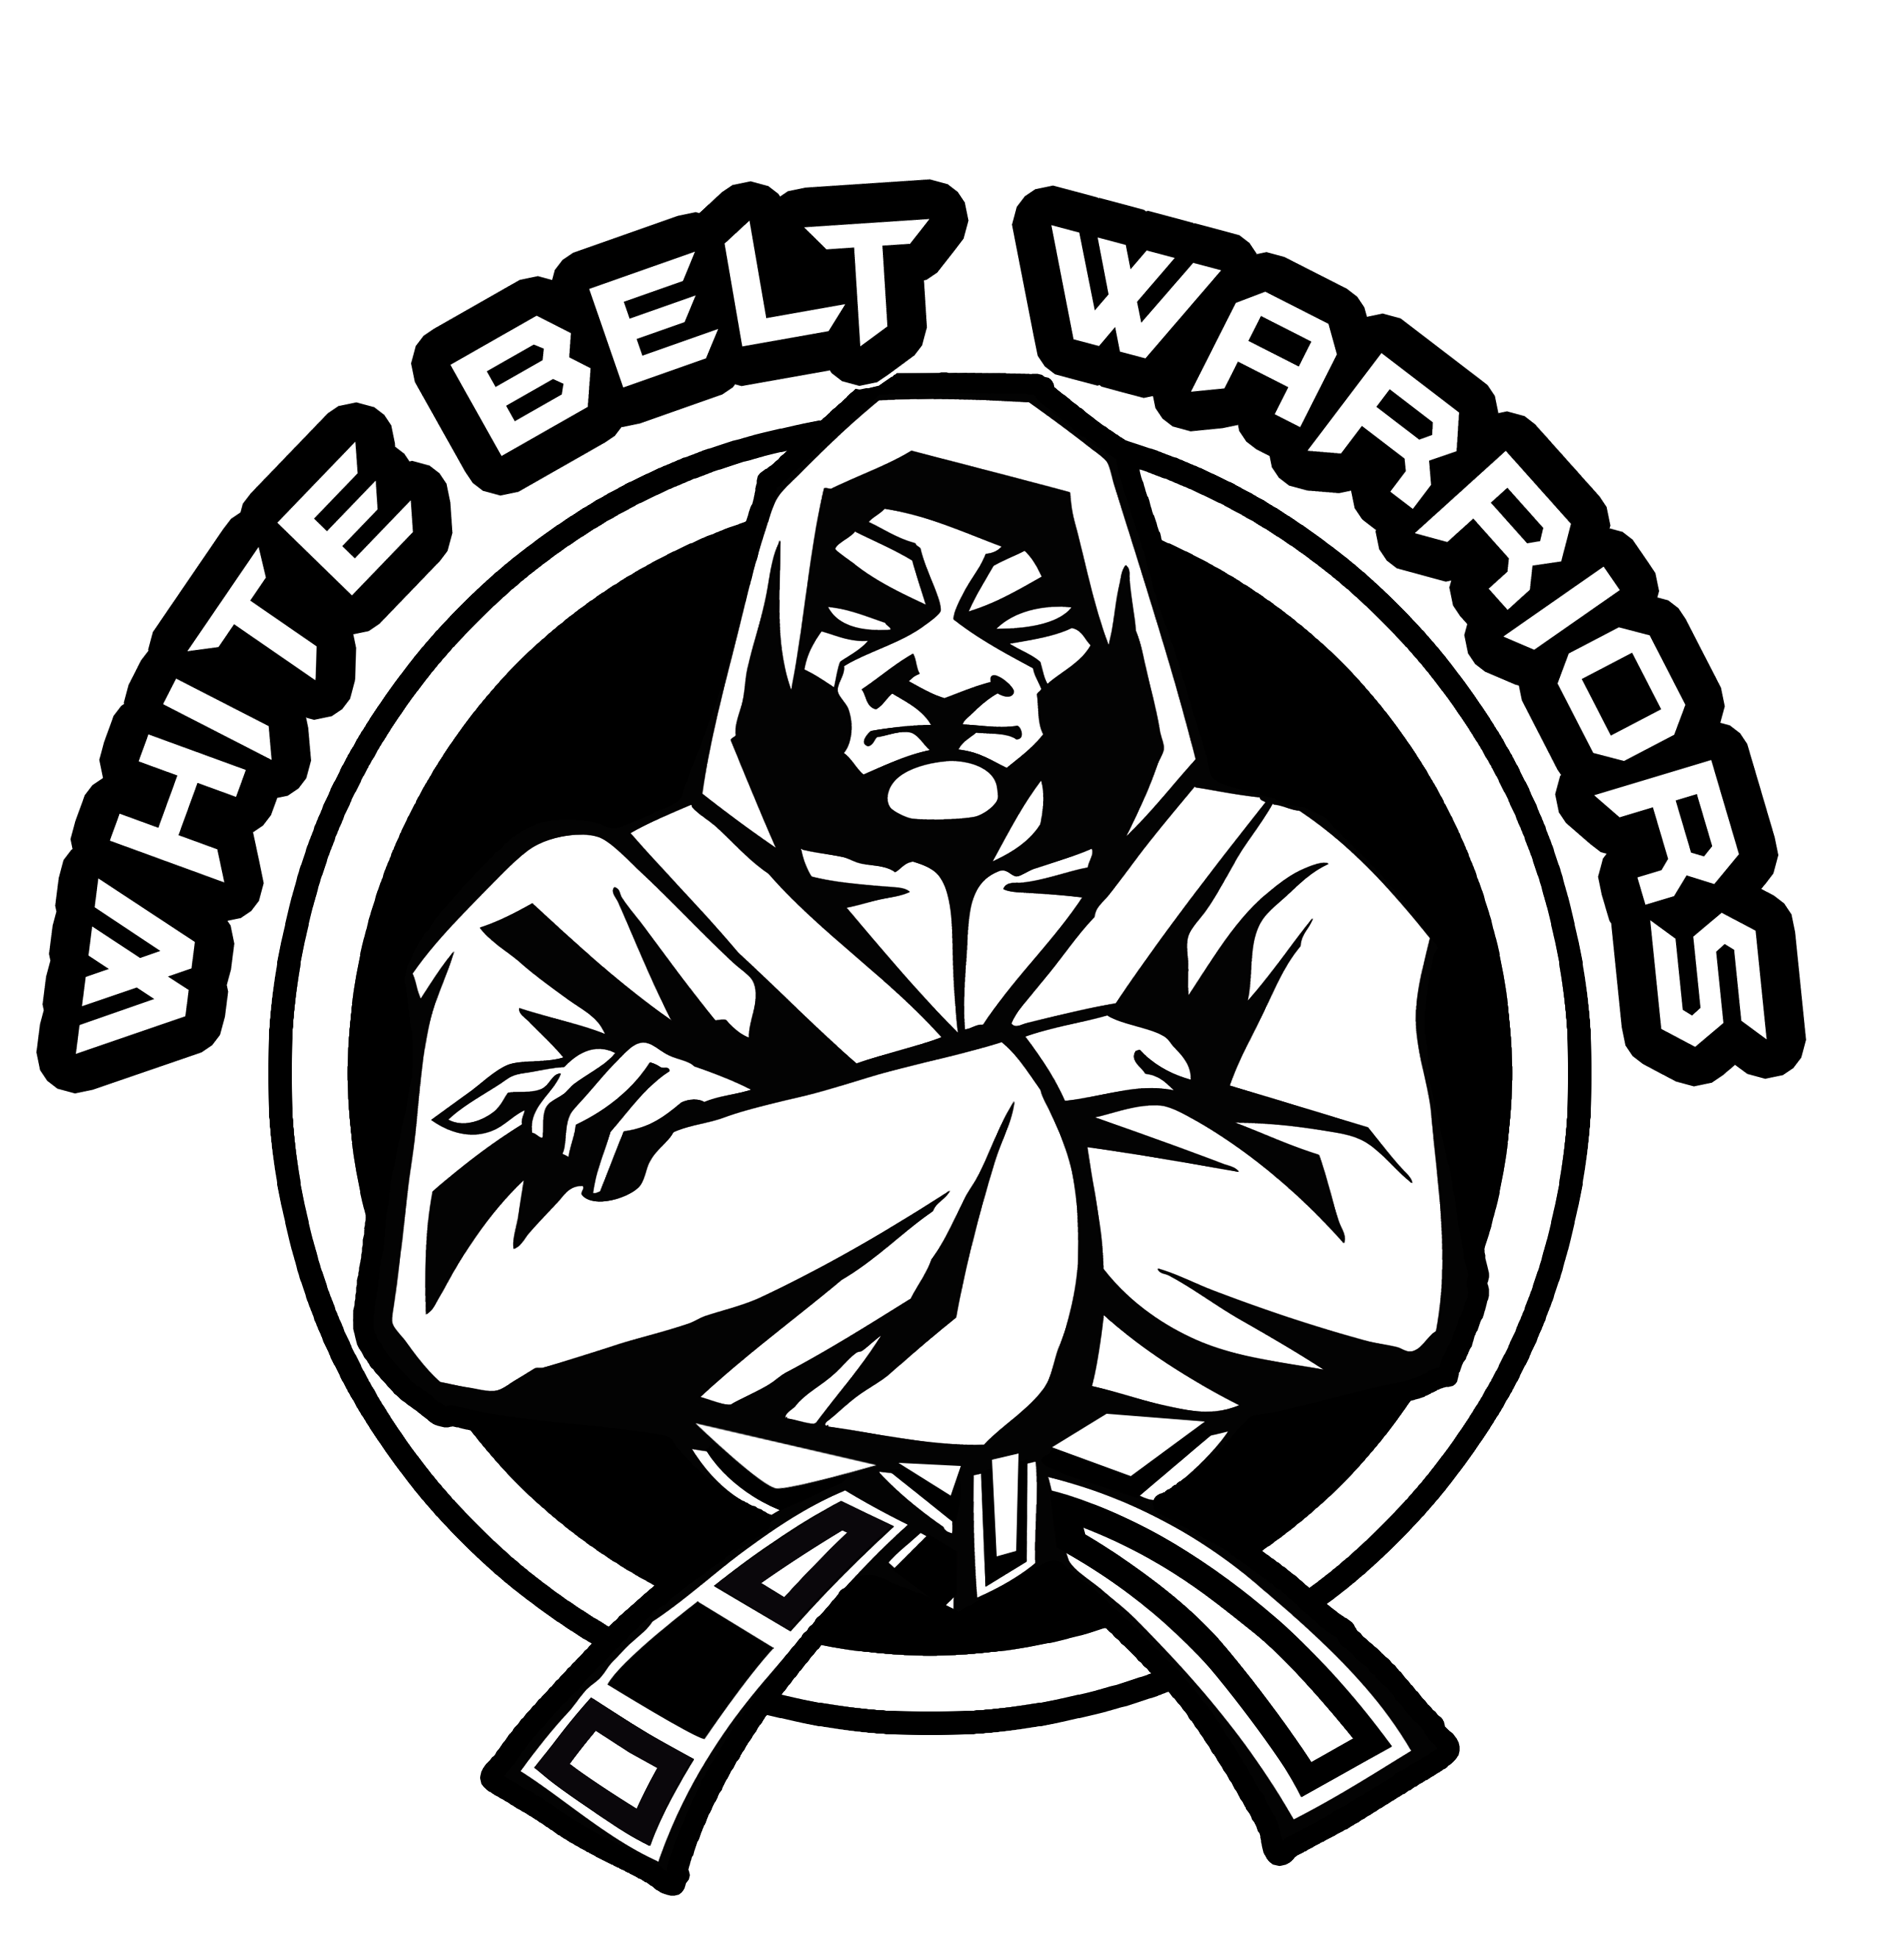 White Belt Warriors